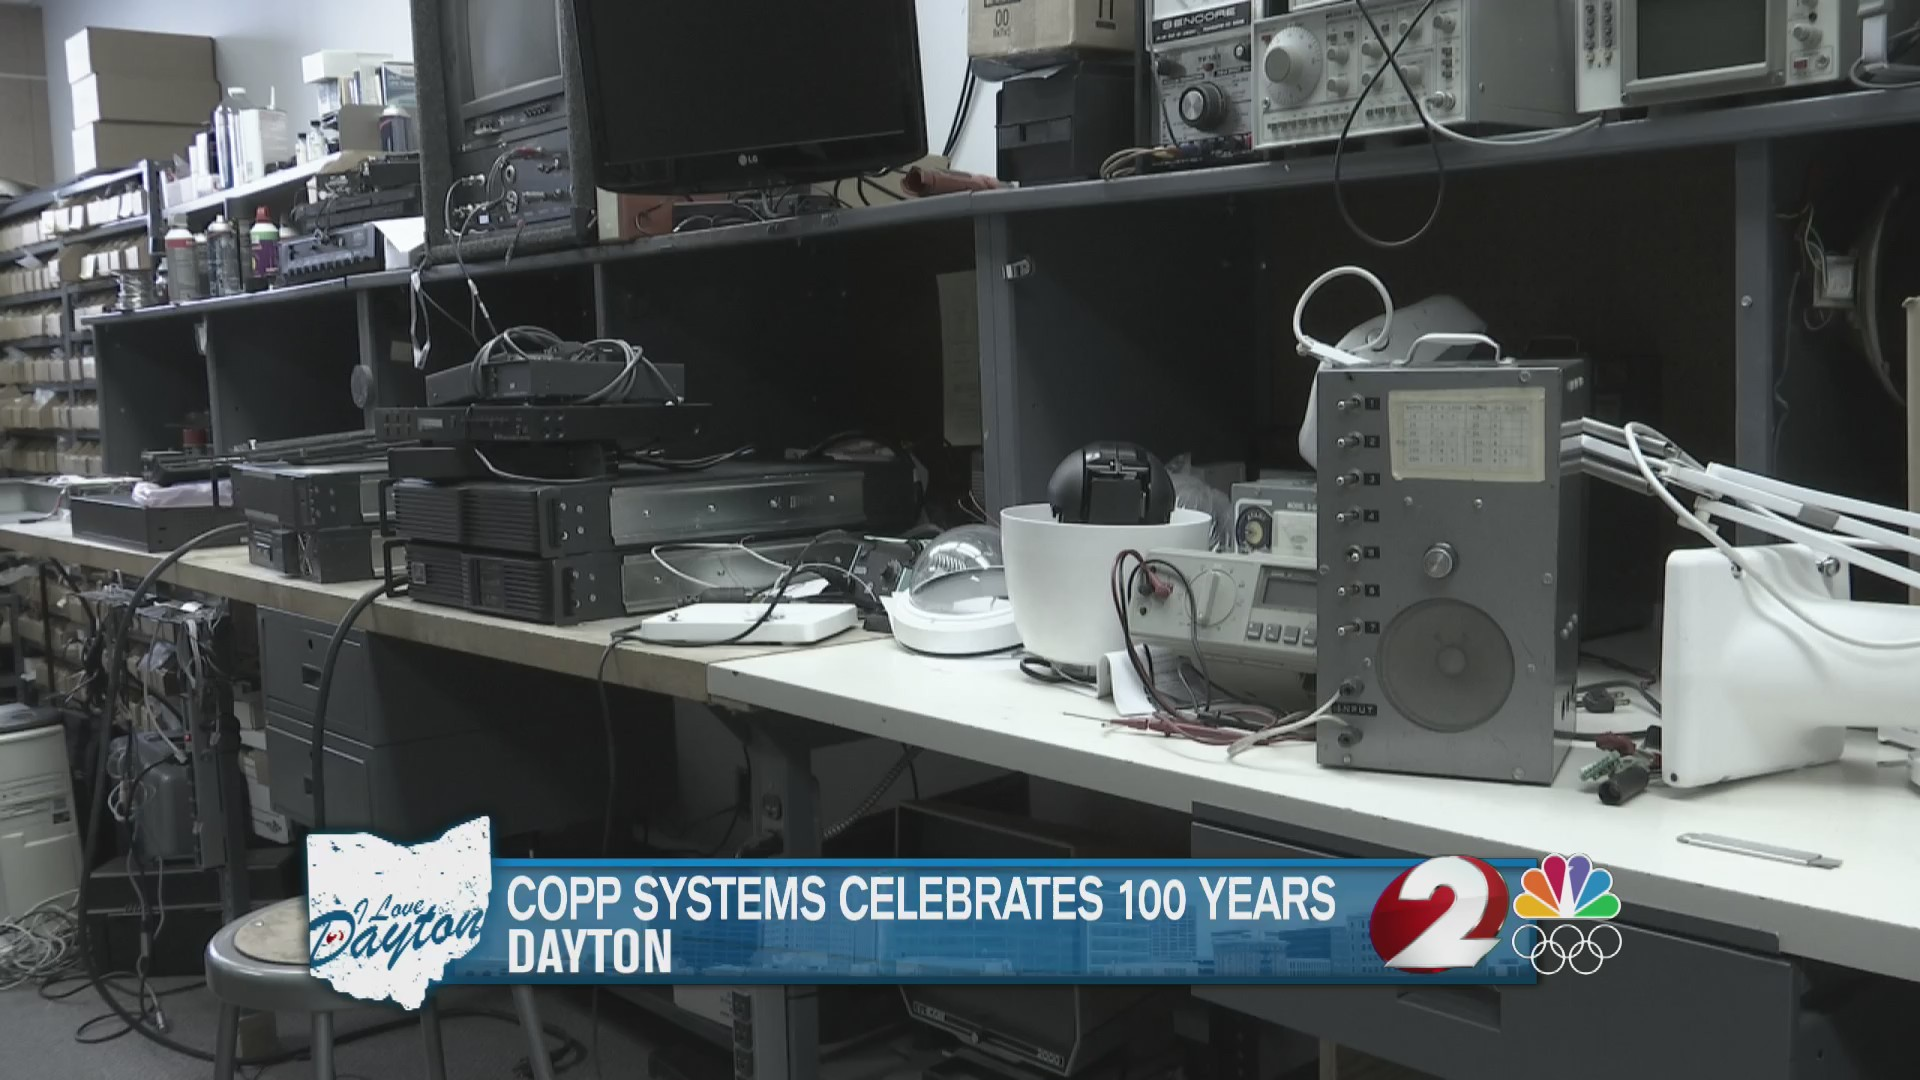 Copp Systems celebrates 100 years